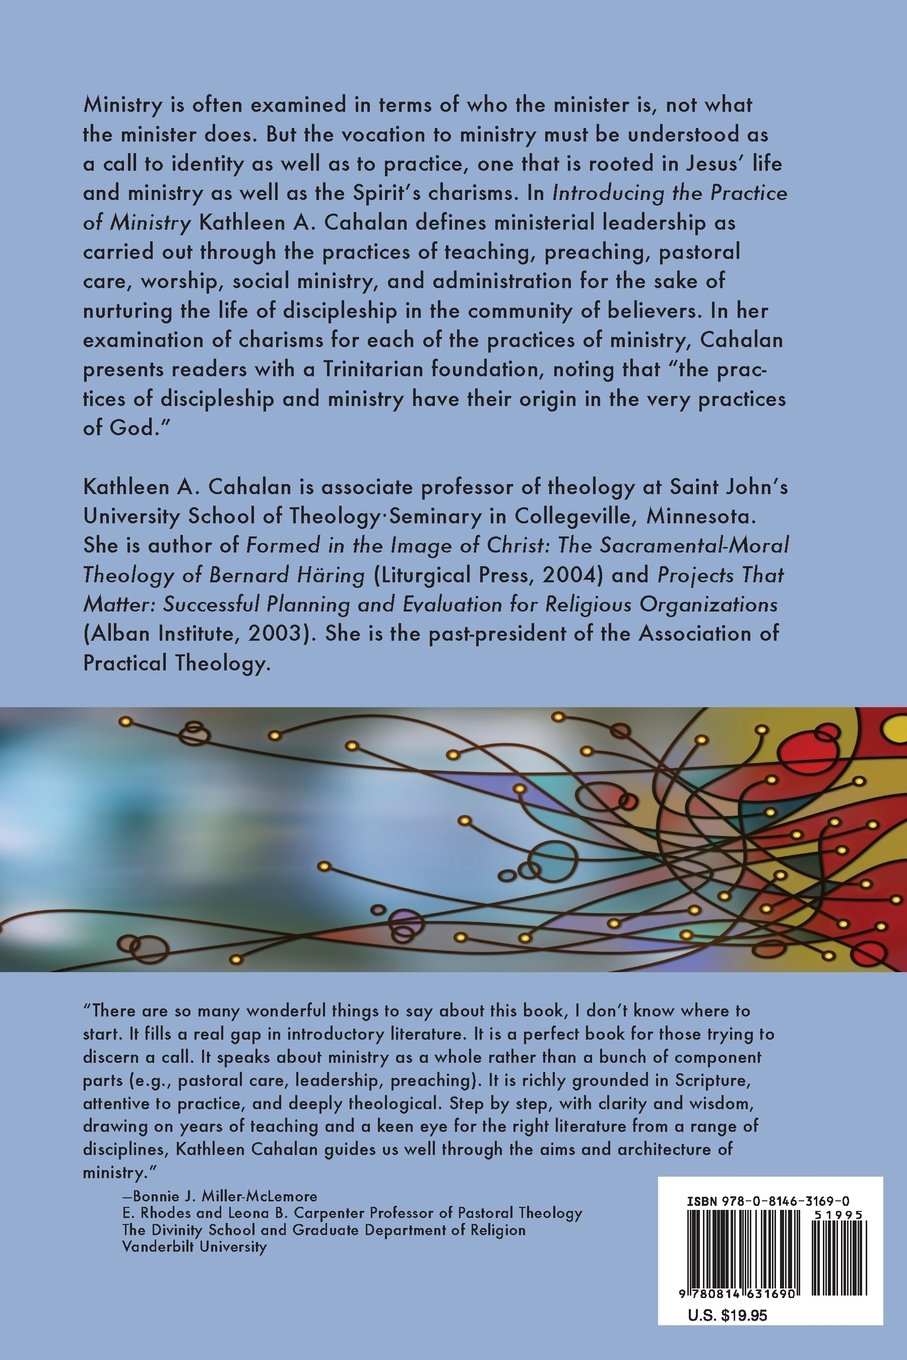 Introducing The Practice Of Ministry: Kathleen A Cahalan: 9780814631690:  Amazon: Books